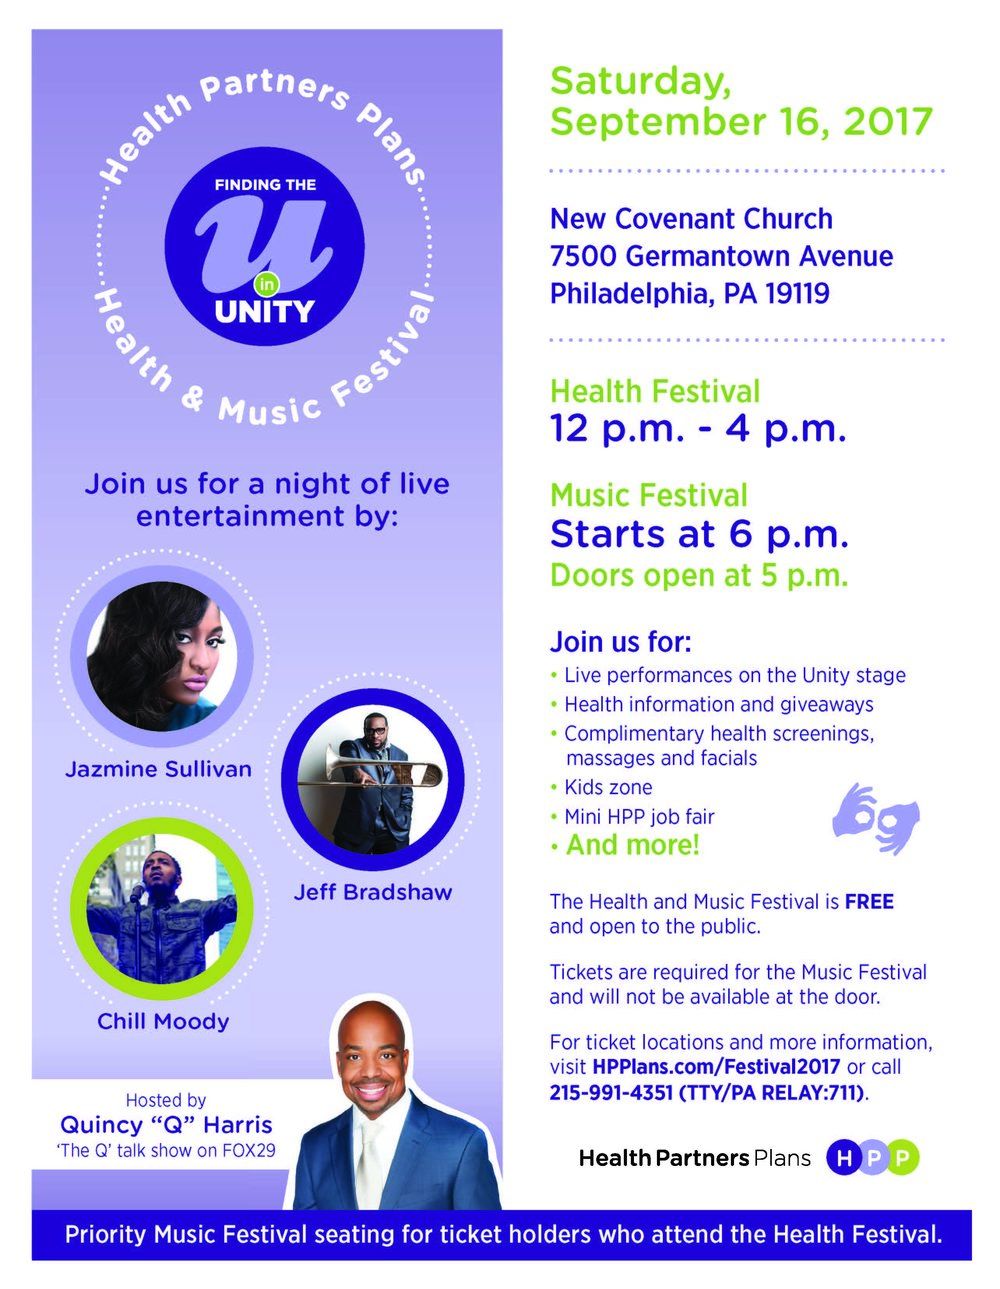 CC-2129-17 ASL FINAL Unity Health and Music Festival Flyer (2)_Page_1.jpg